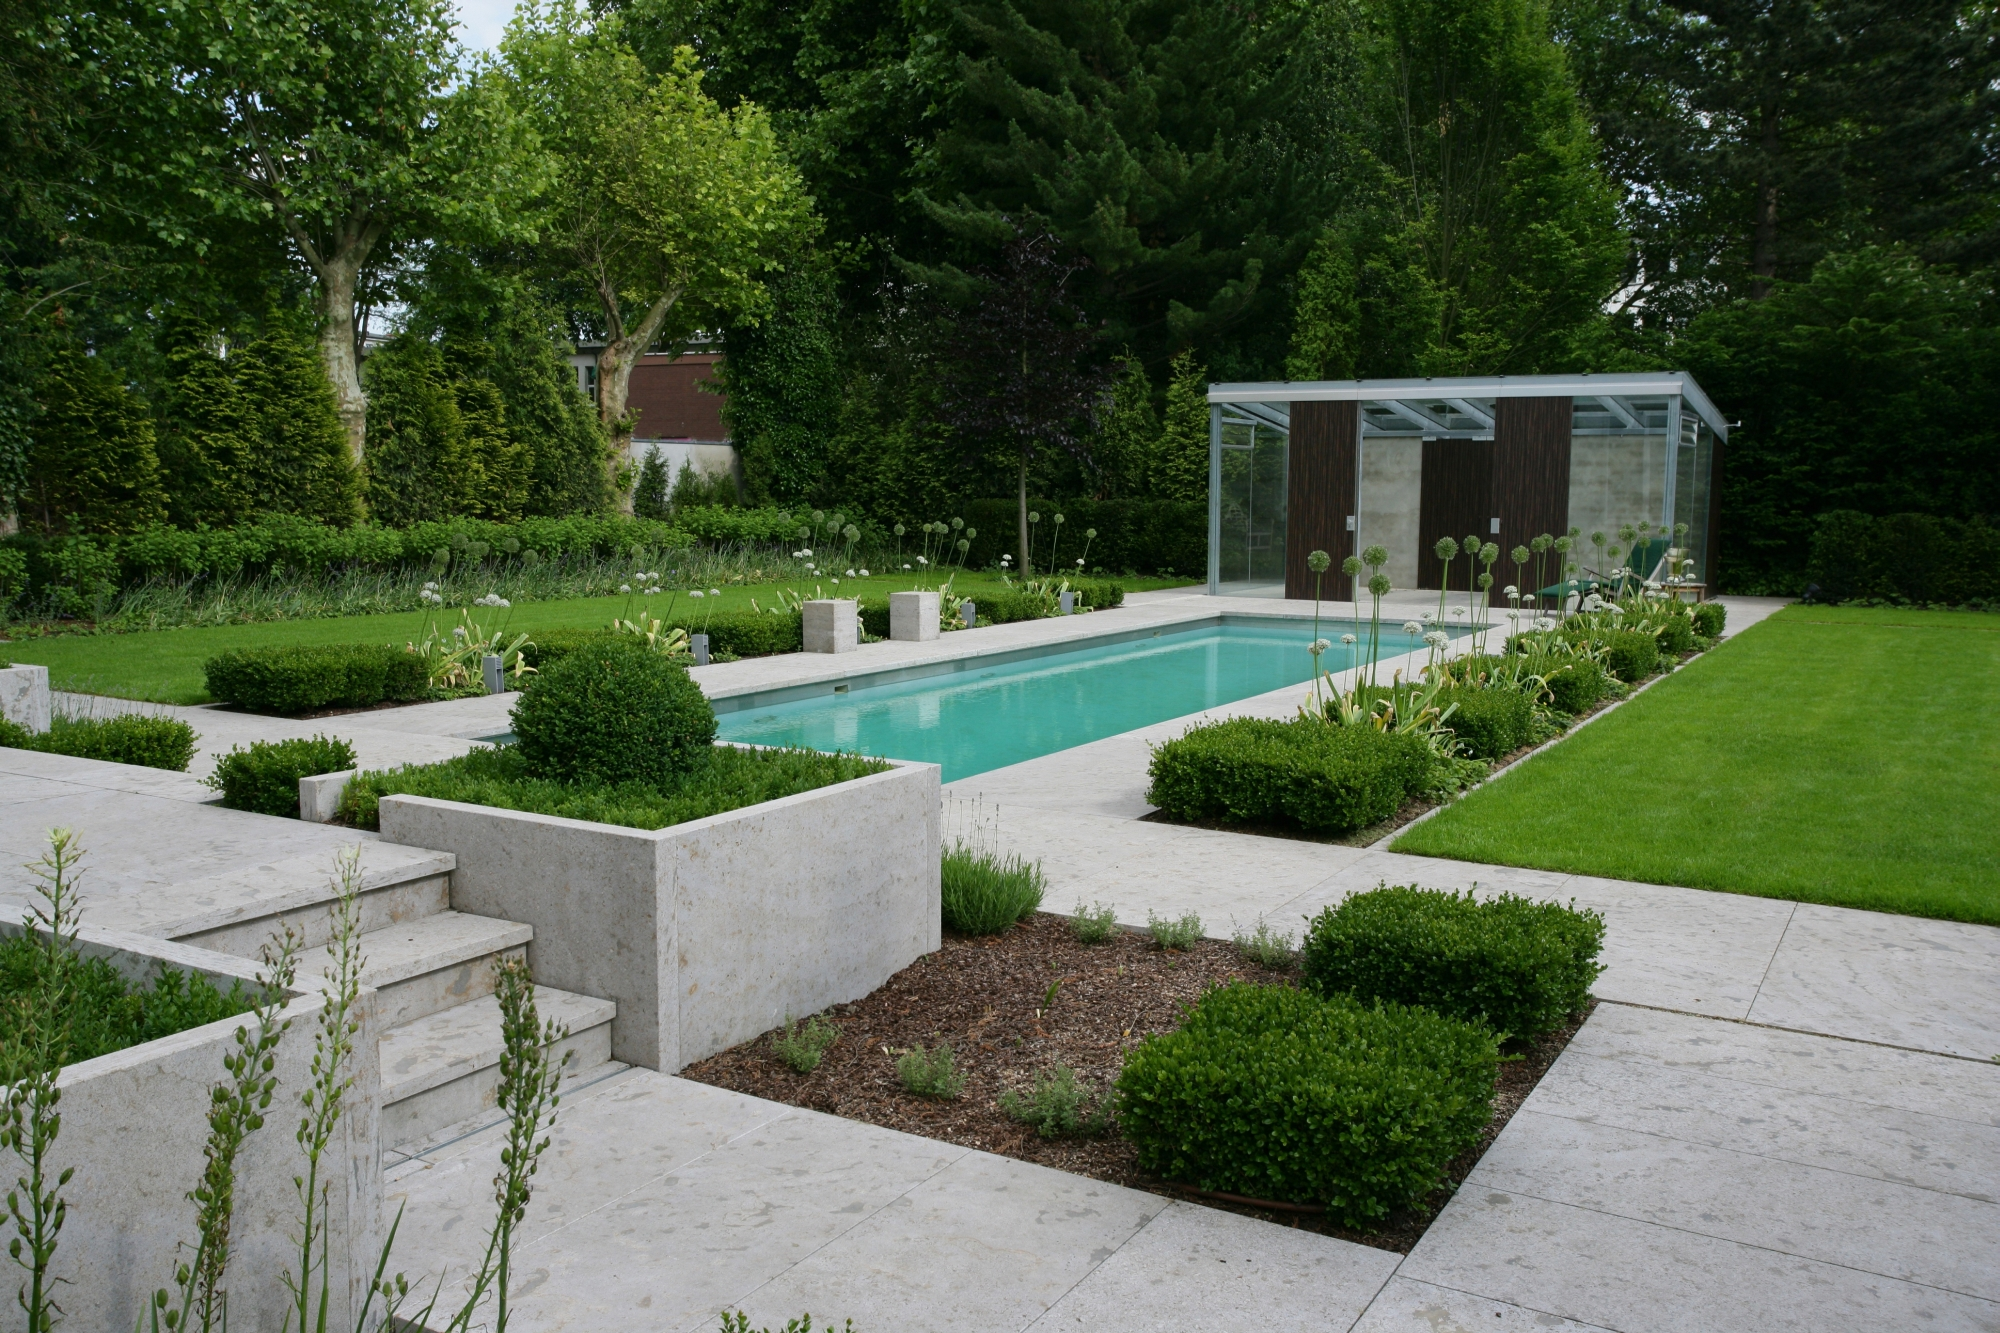 Le living pool de biotop les piscines traditionnelles se for Jardin designer